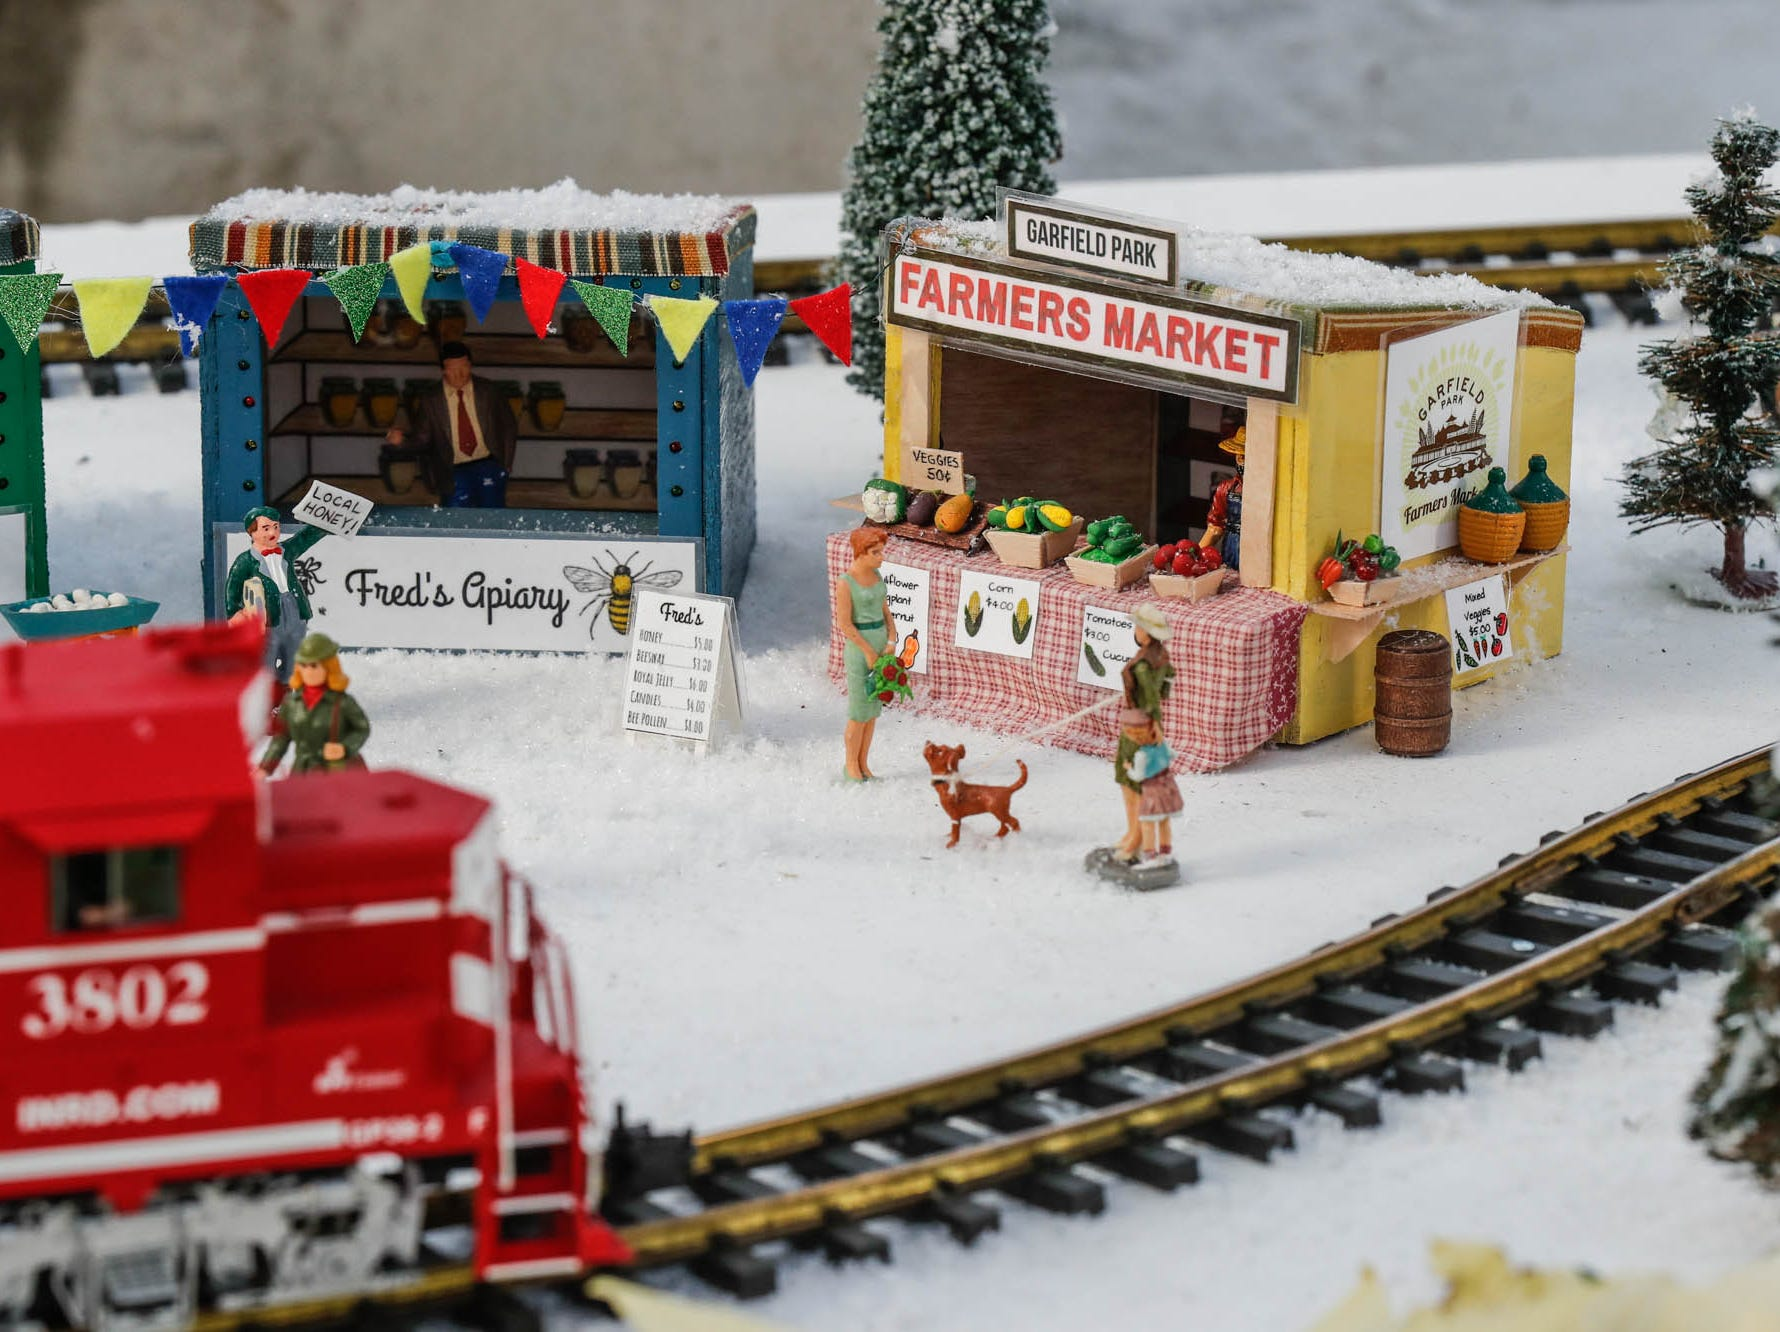 Garfield Park Farmers Market is depicted in the Conservatory Crossing holiday display at the Garfield Park Conservatory on Saturday, Dec. 29, 2018.